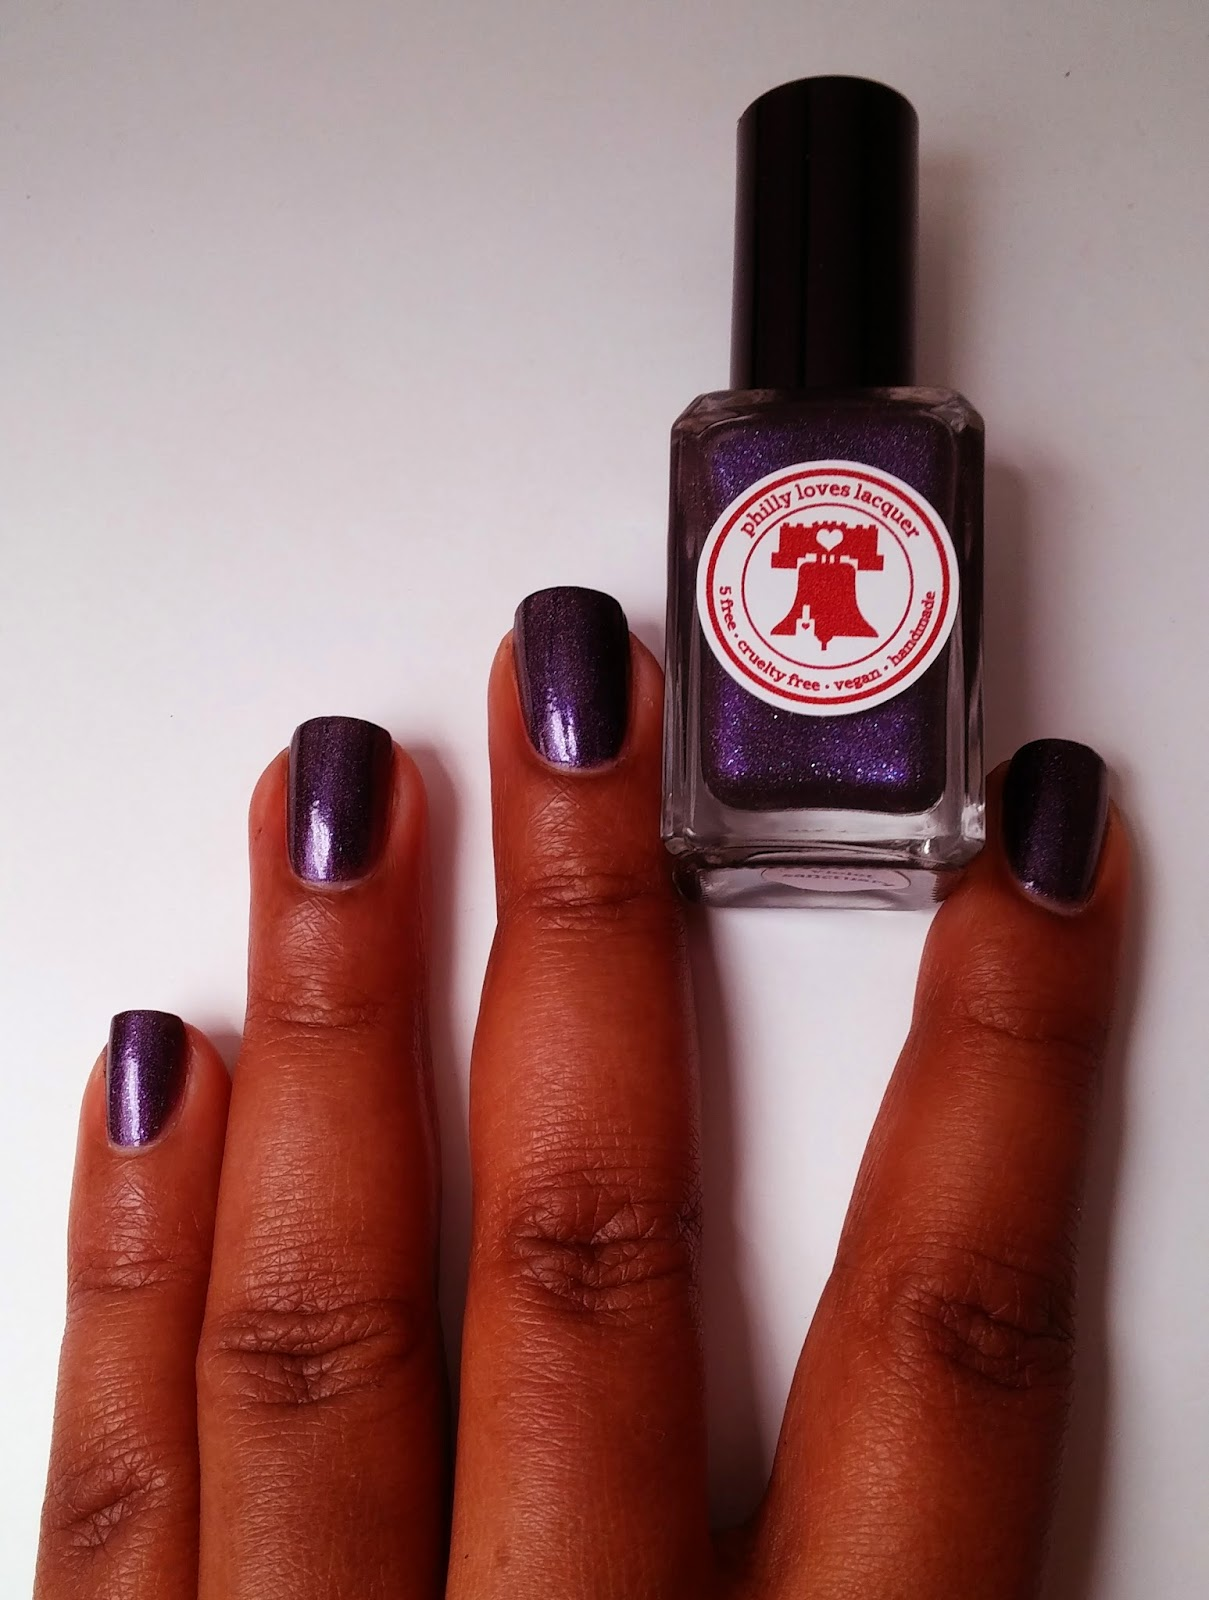 Philly Loves Lacquer in Violet Sanctuary